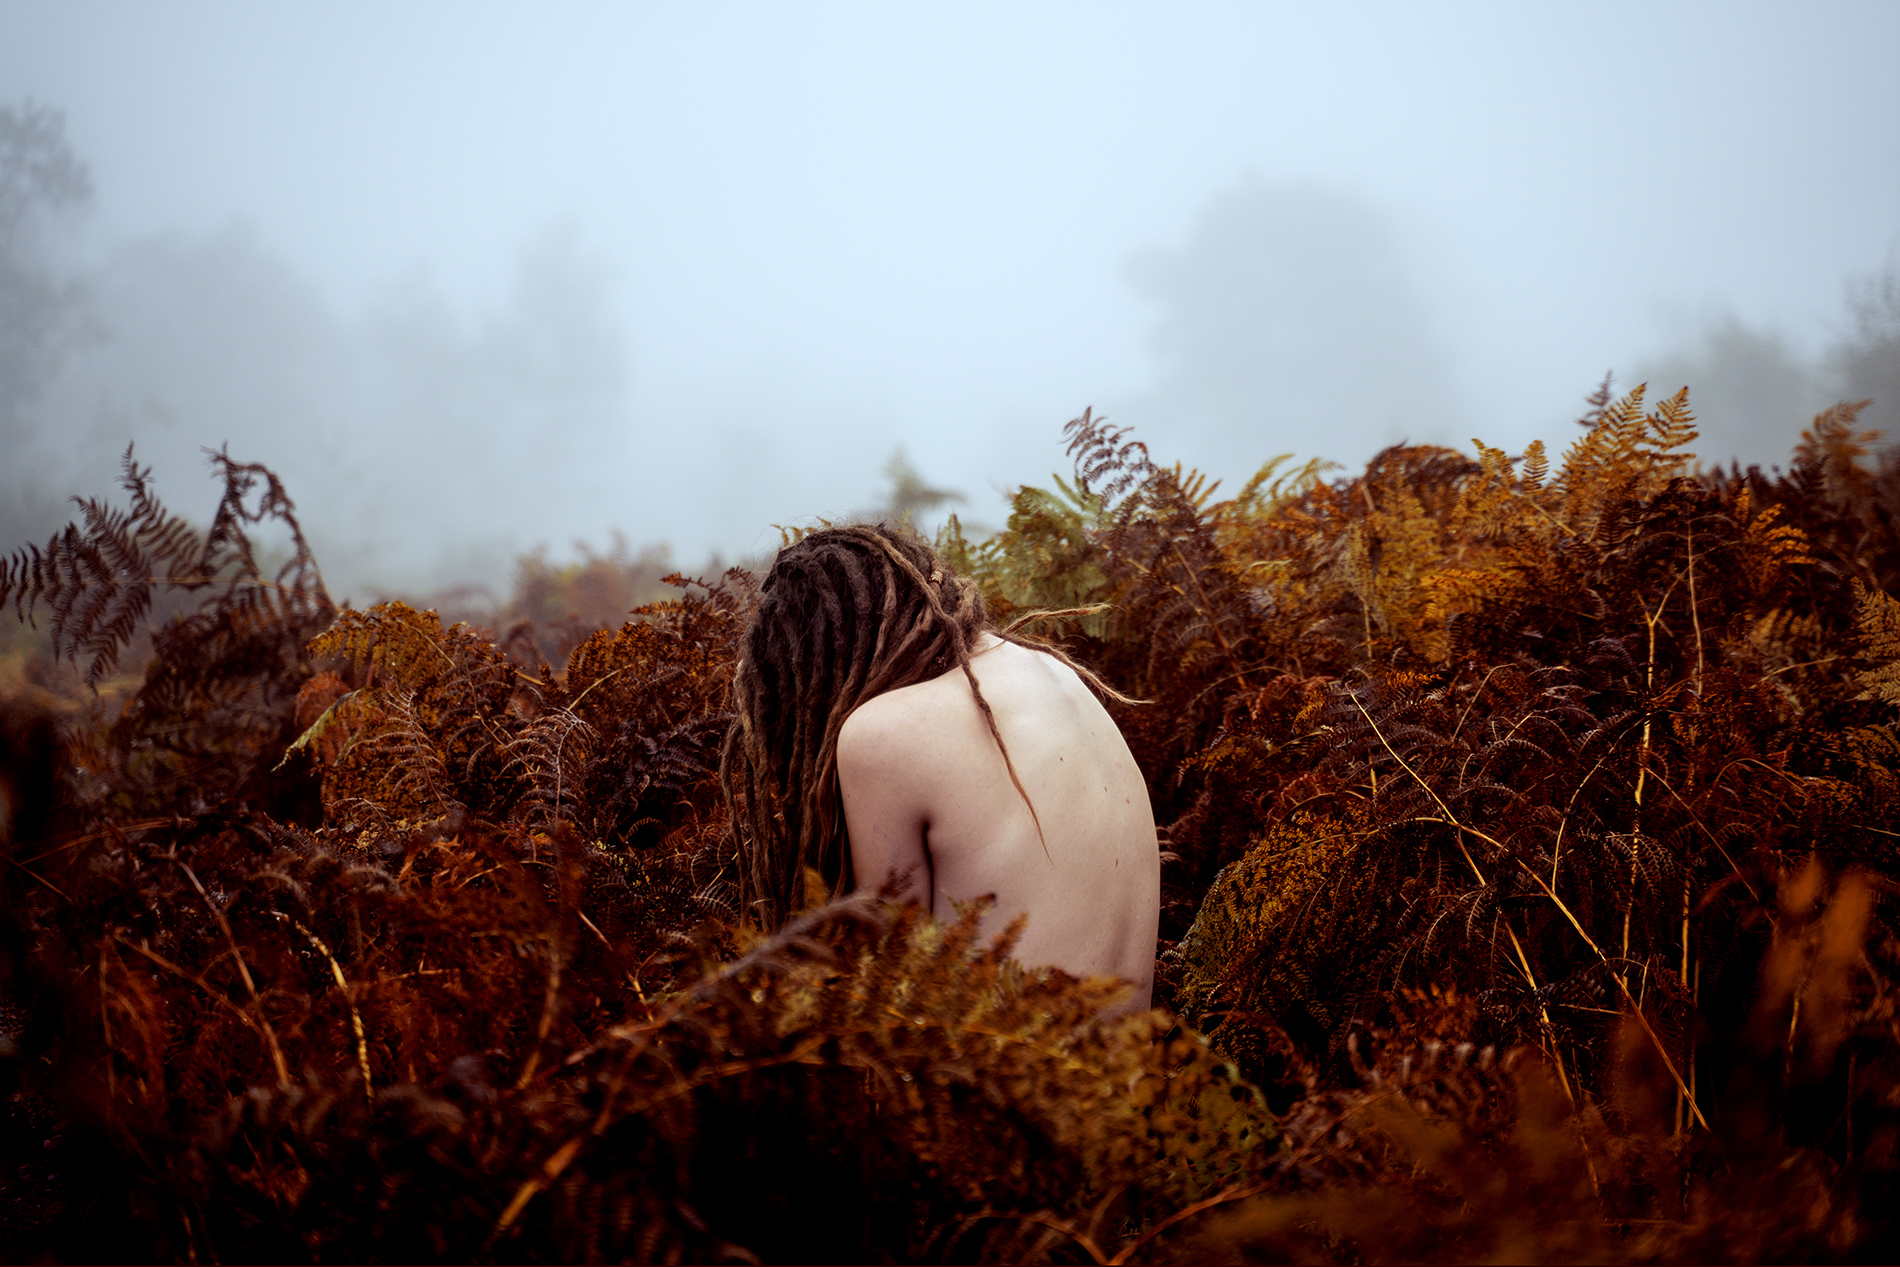 An emotive self portrait showing a woman's naked back inbetween ferns, with fog in the background.